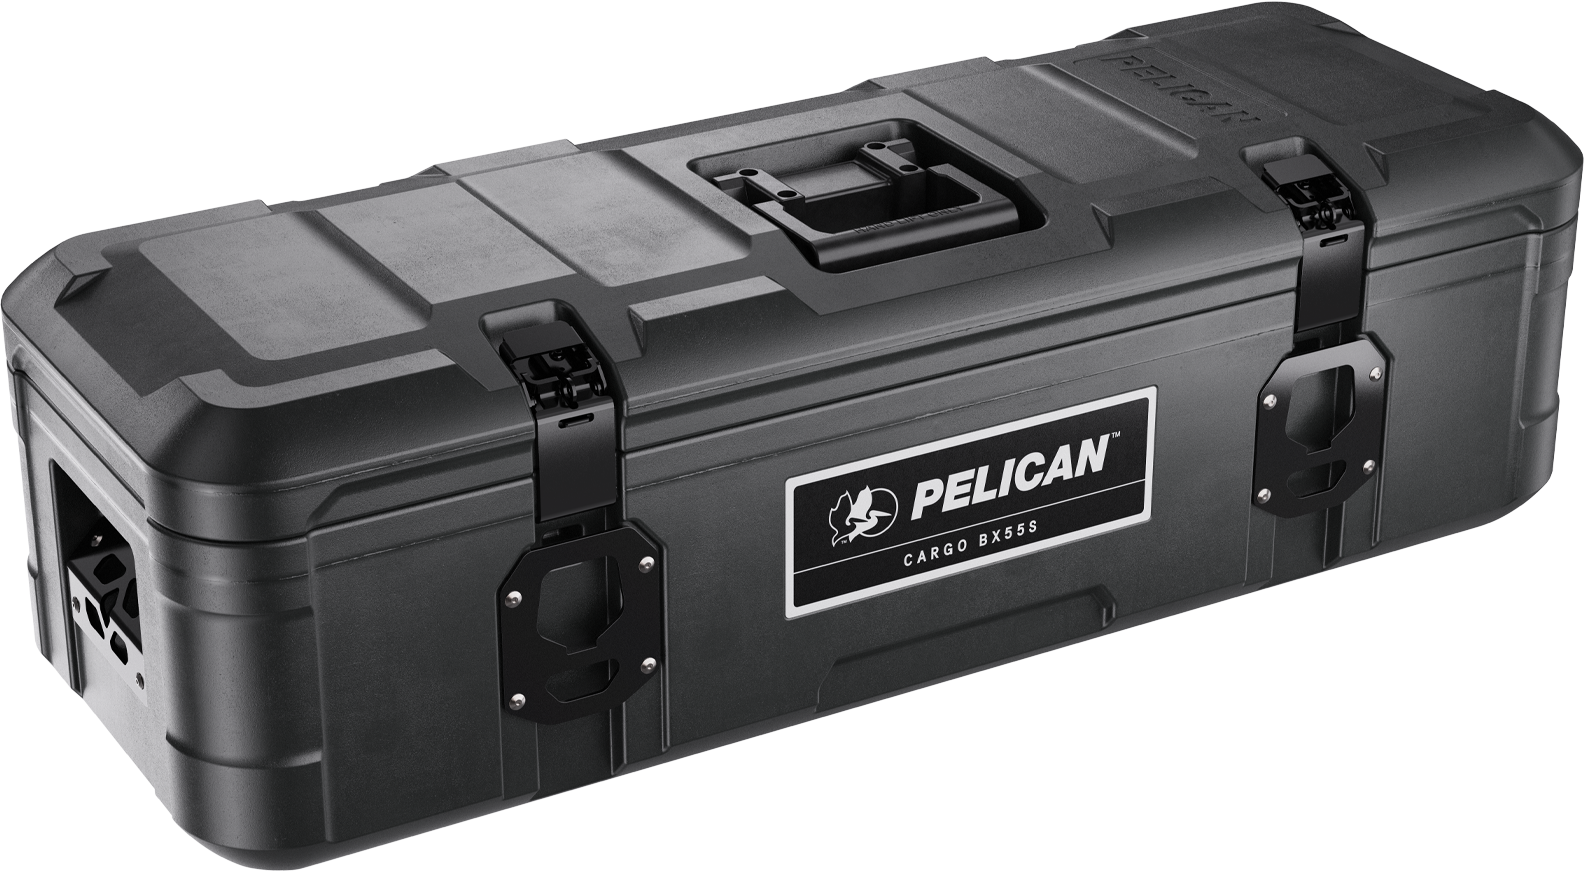 pelican cargo cases features